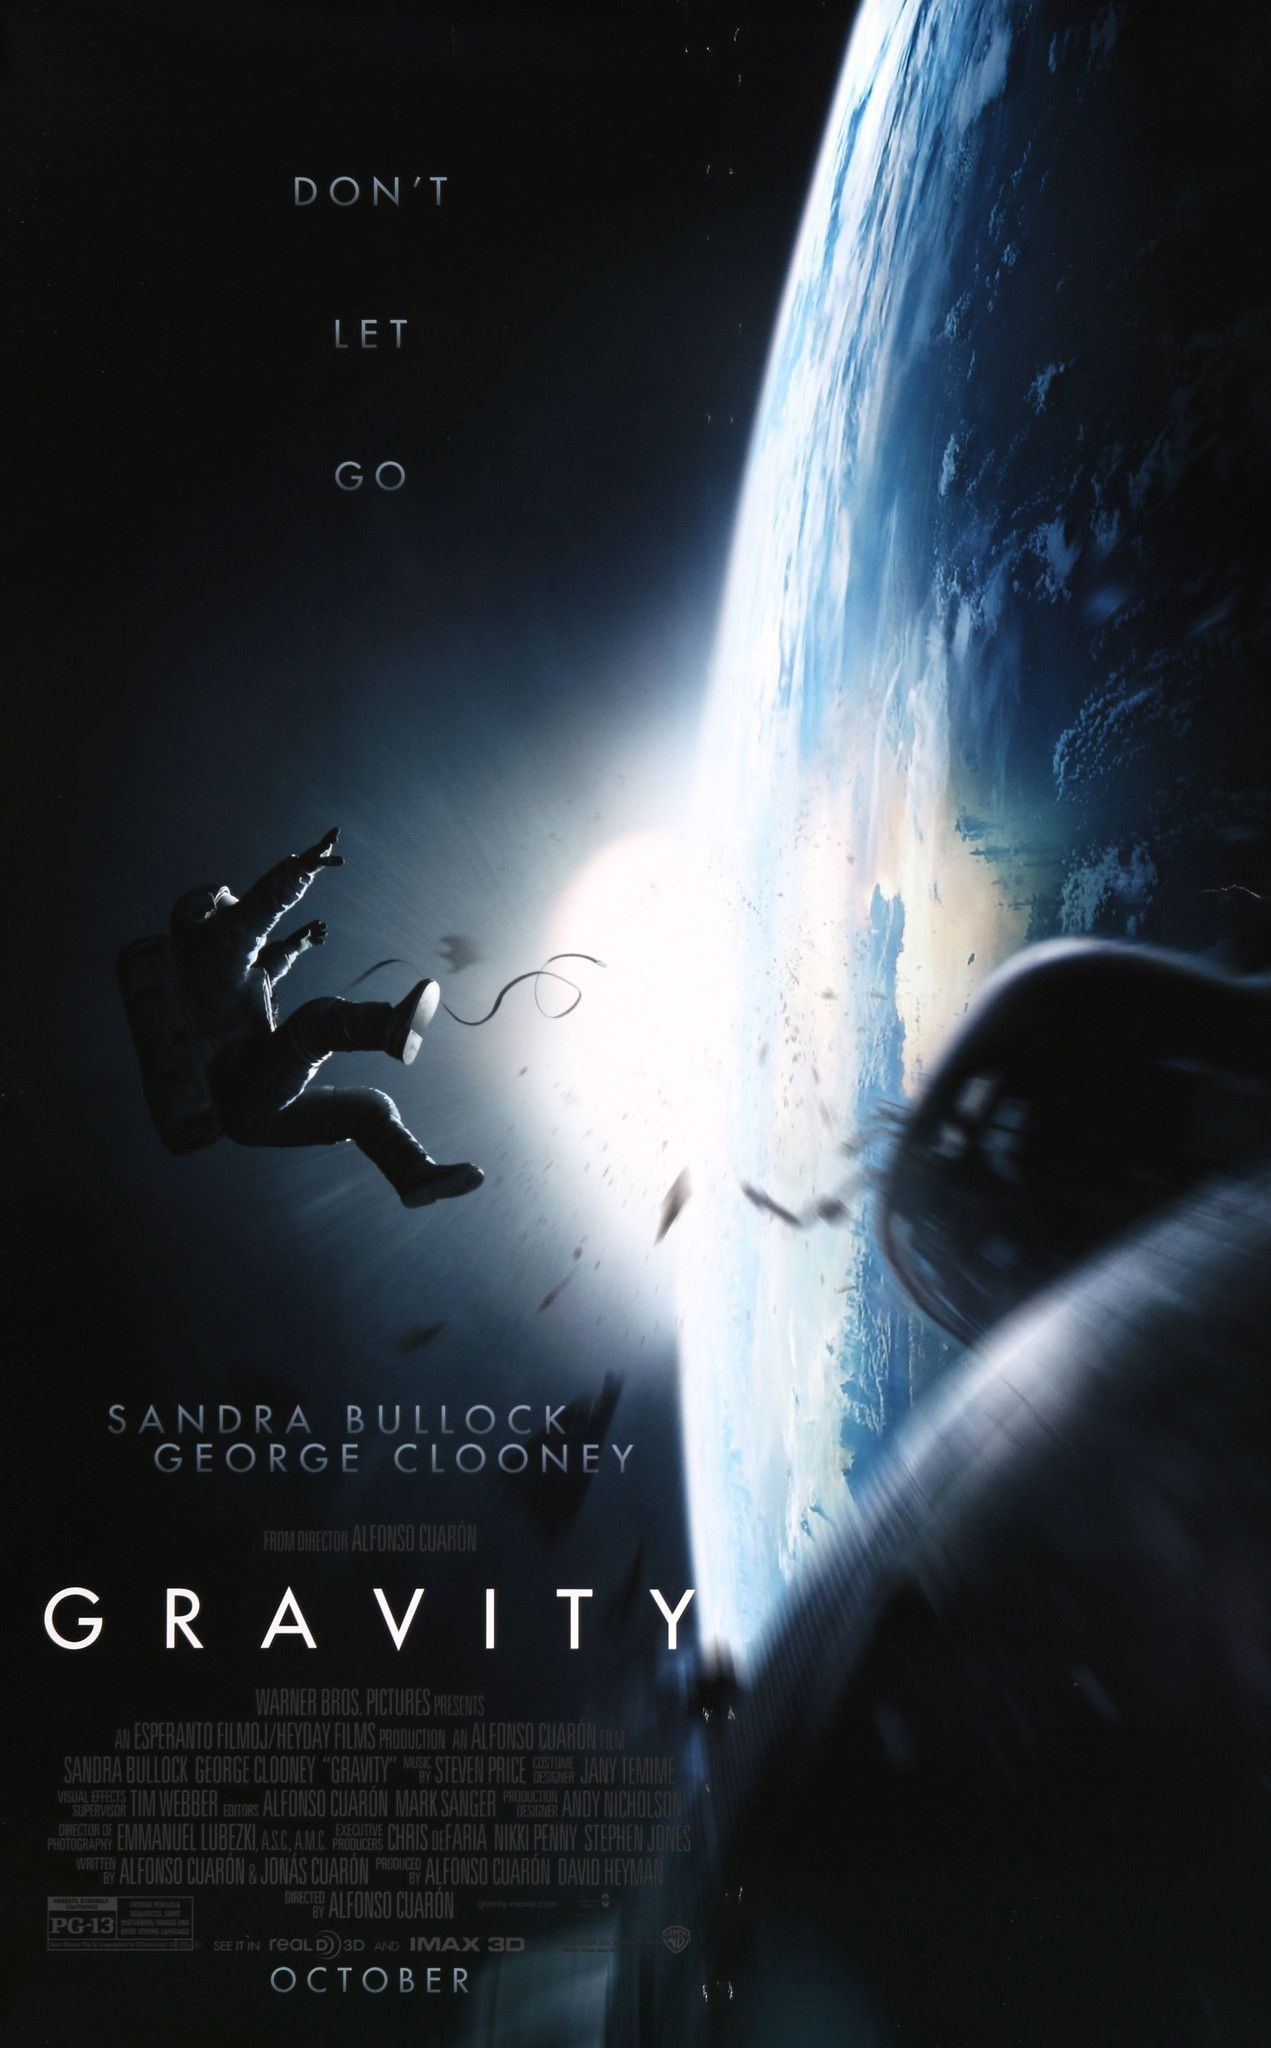 Gravity (2013) | Space movies, Gravity movie, Good movies